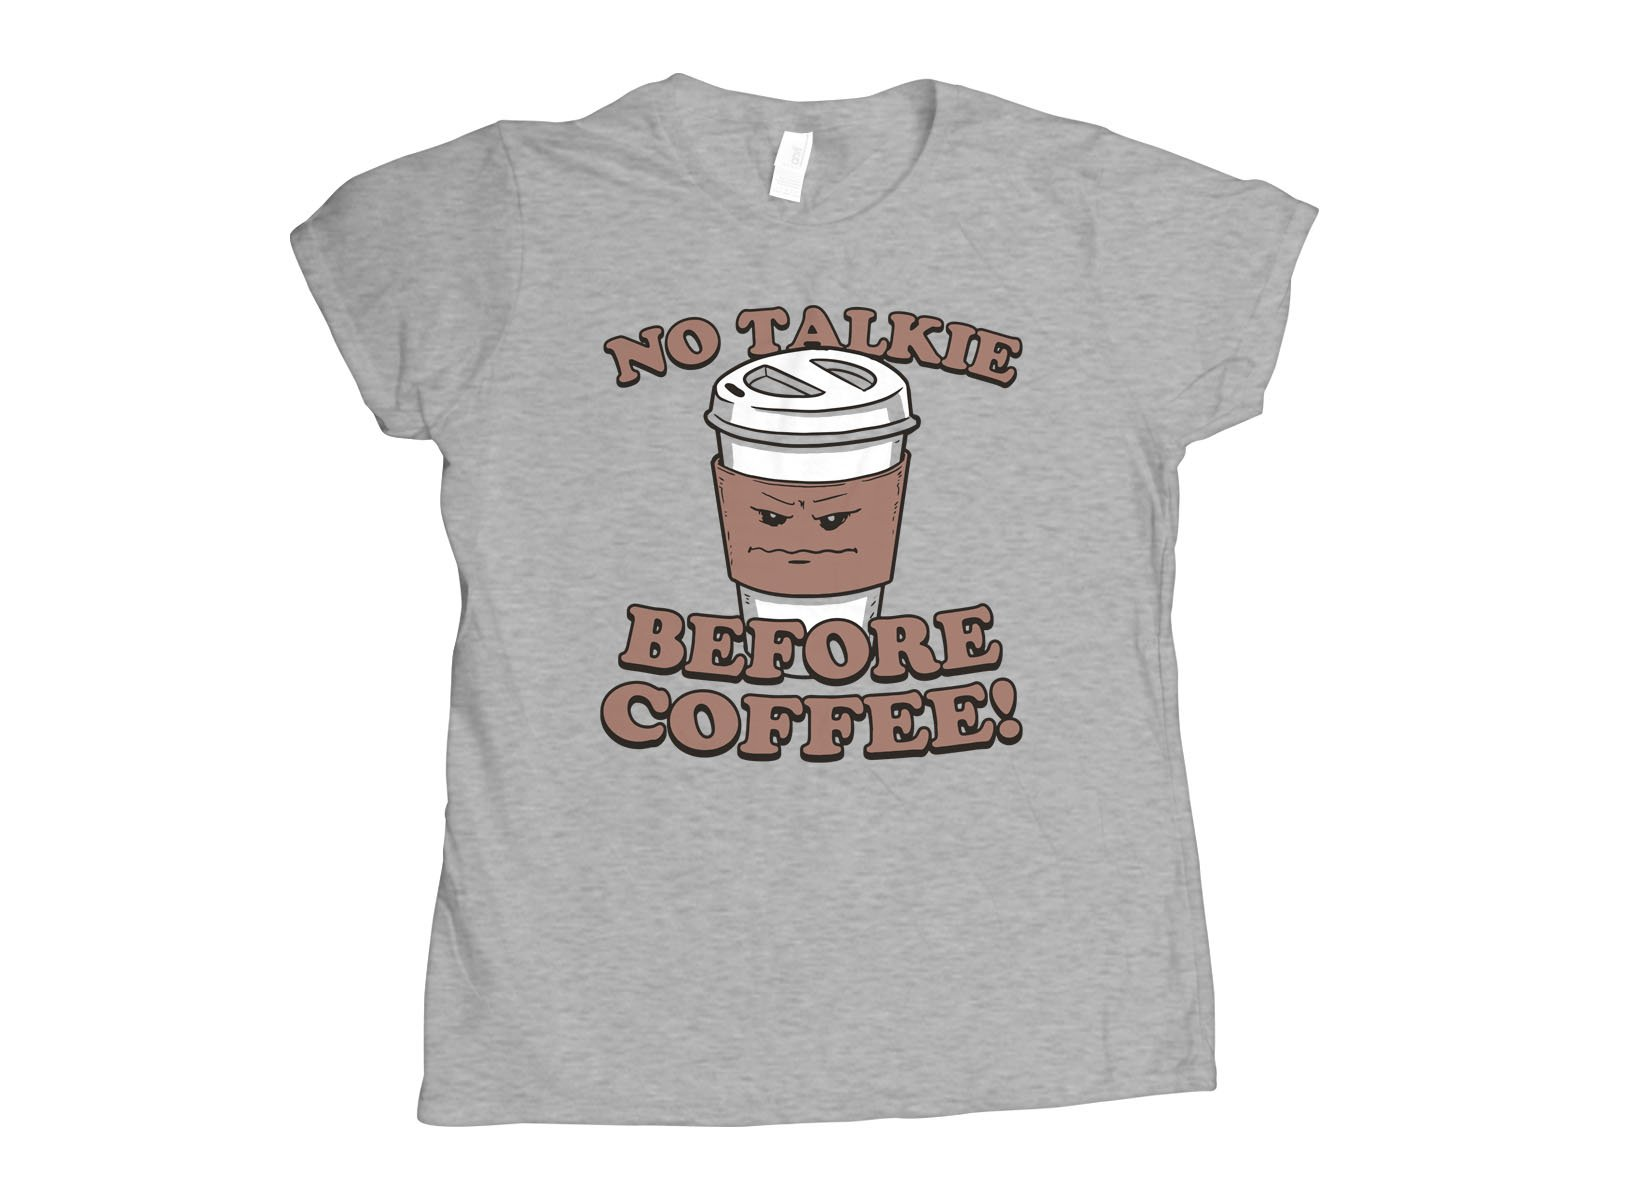 No Talkie Before Coffee! on Womens T-Shirt